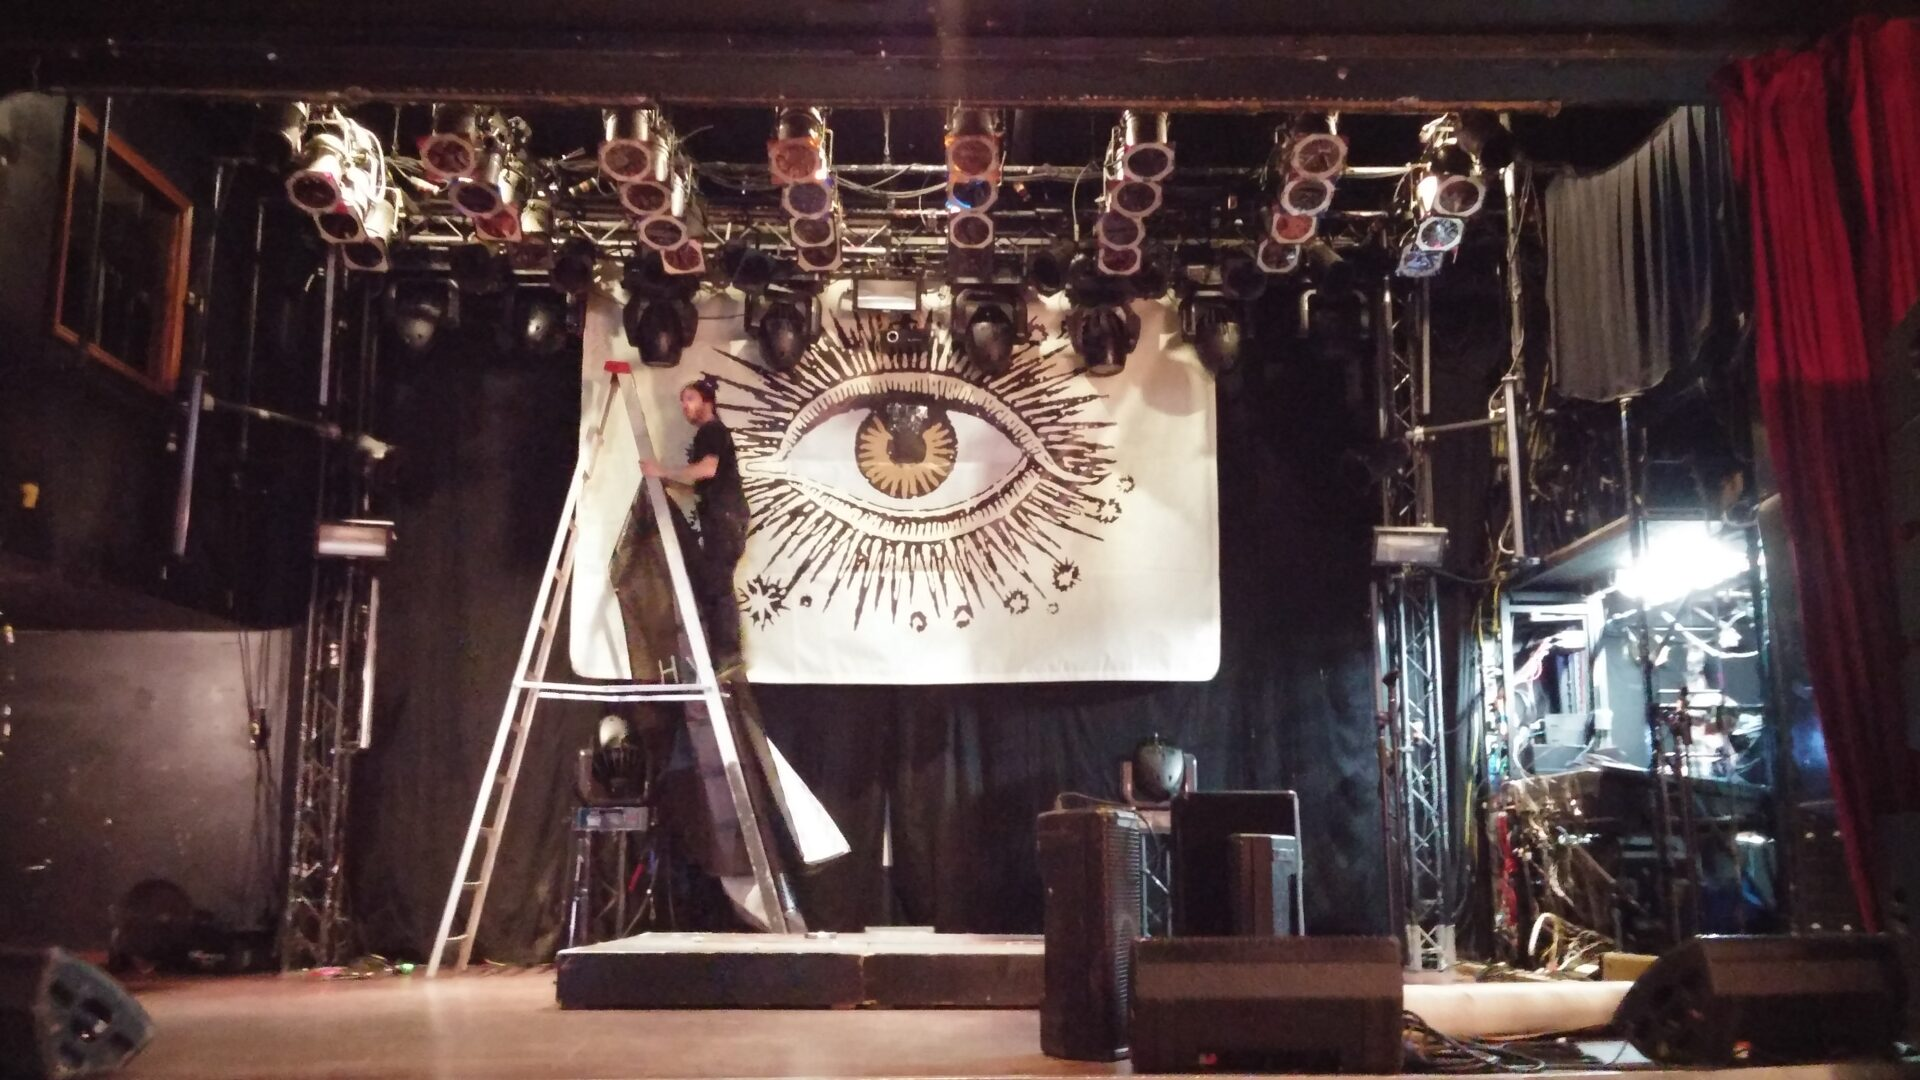 Getting set up for the show in Toronto. We had that eye looking at us every show.